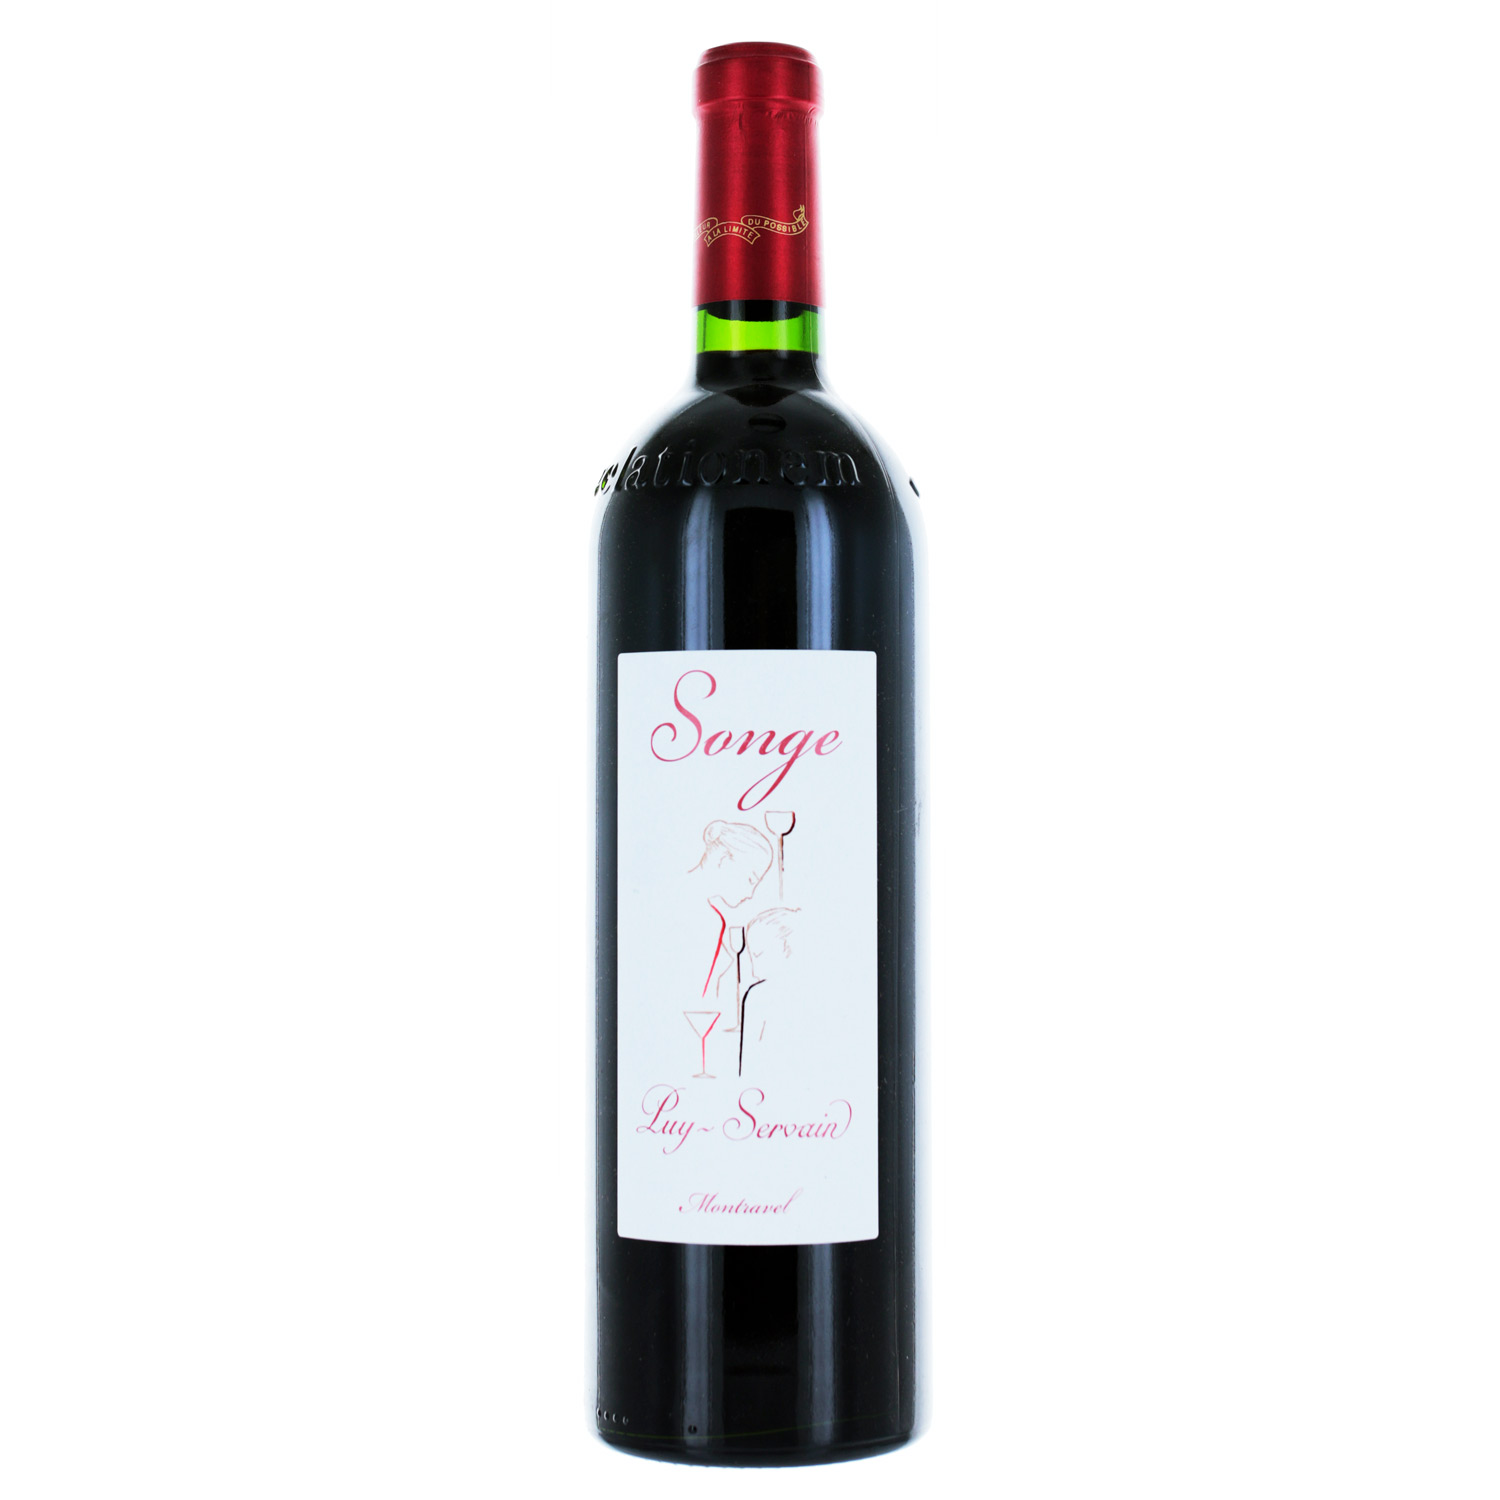 Montravel - Songe - Chateau Puy Servain - 2011